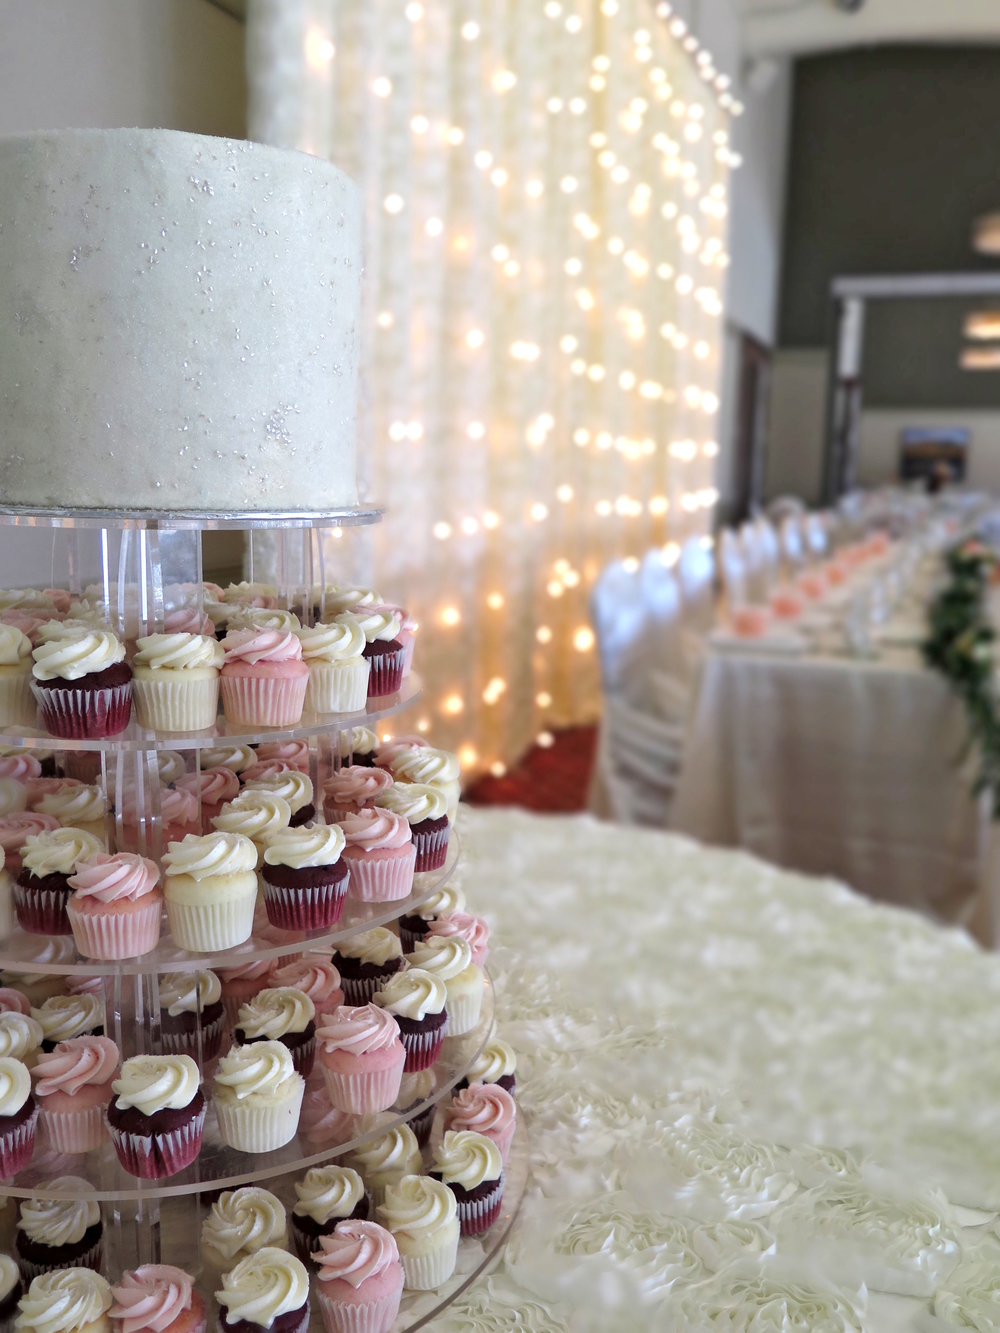 Tall Sparkly Buttercream Cake with Mini Cupcakes